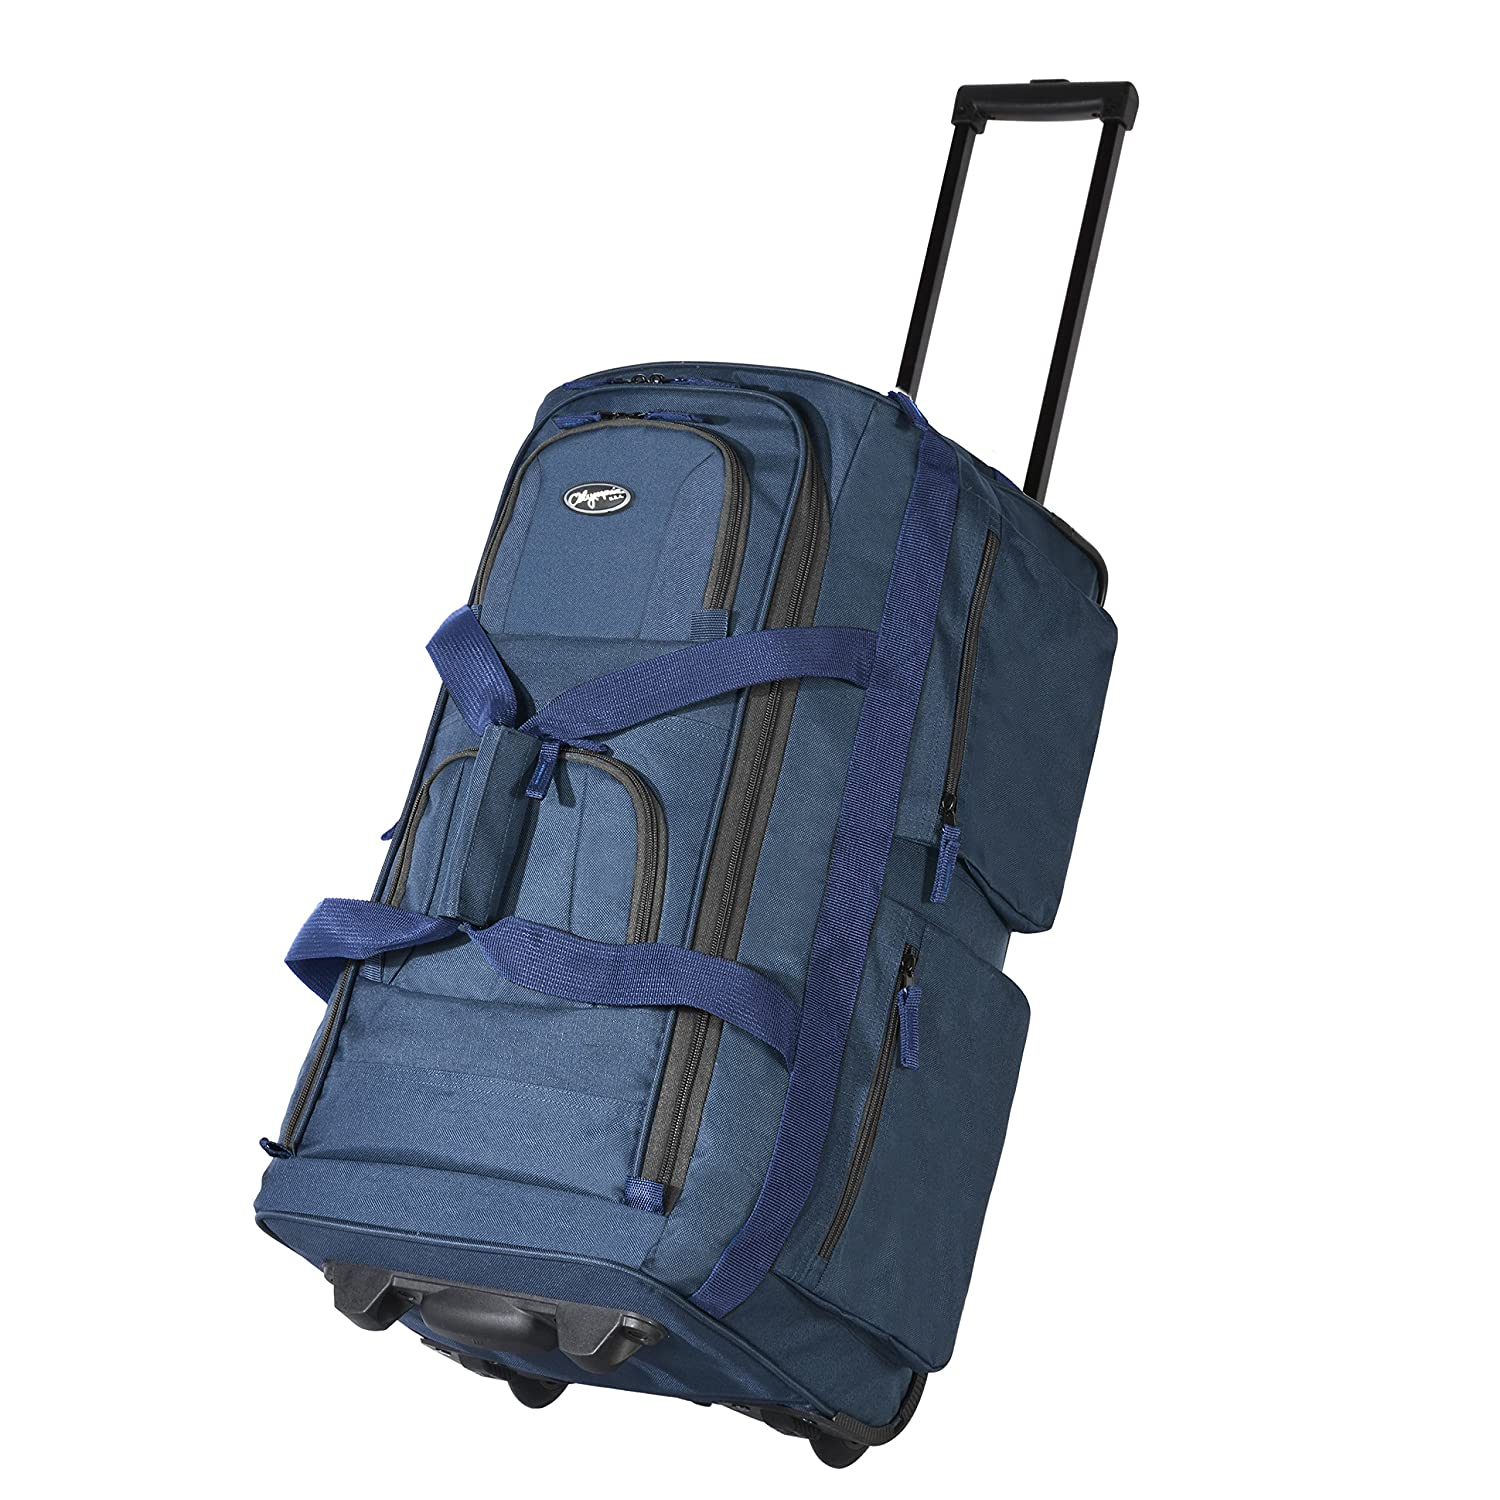 Olympia Luggage 22 Quot 8 Pocket Rolling Duffel Bag Wheeled